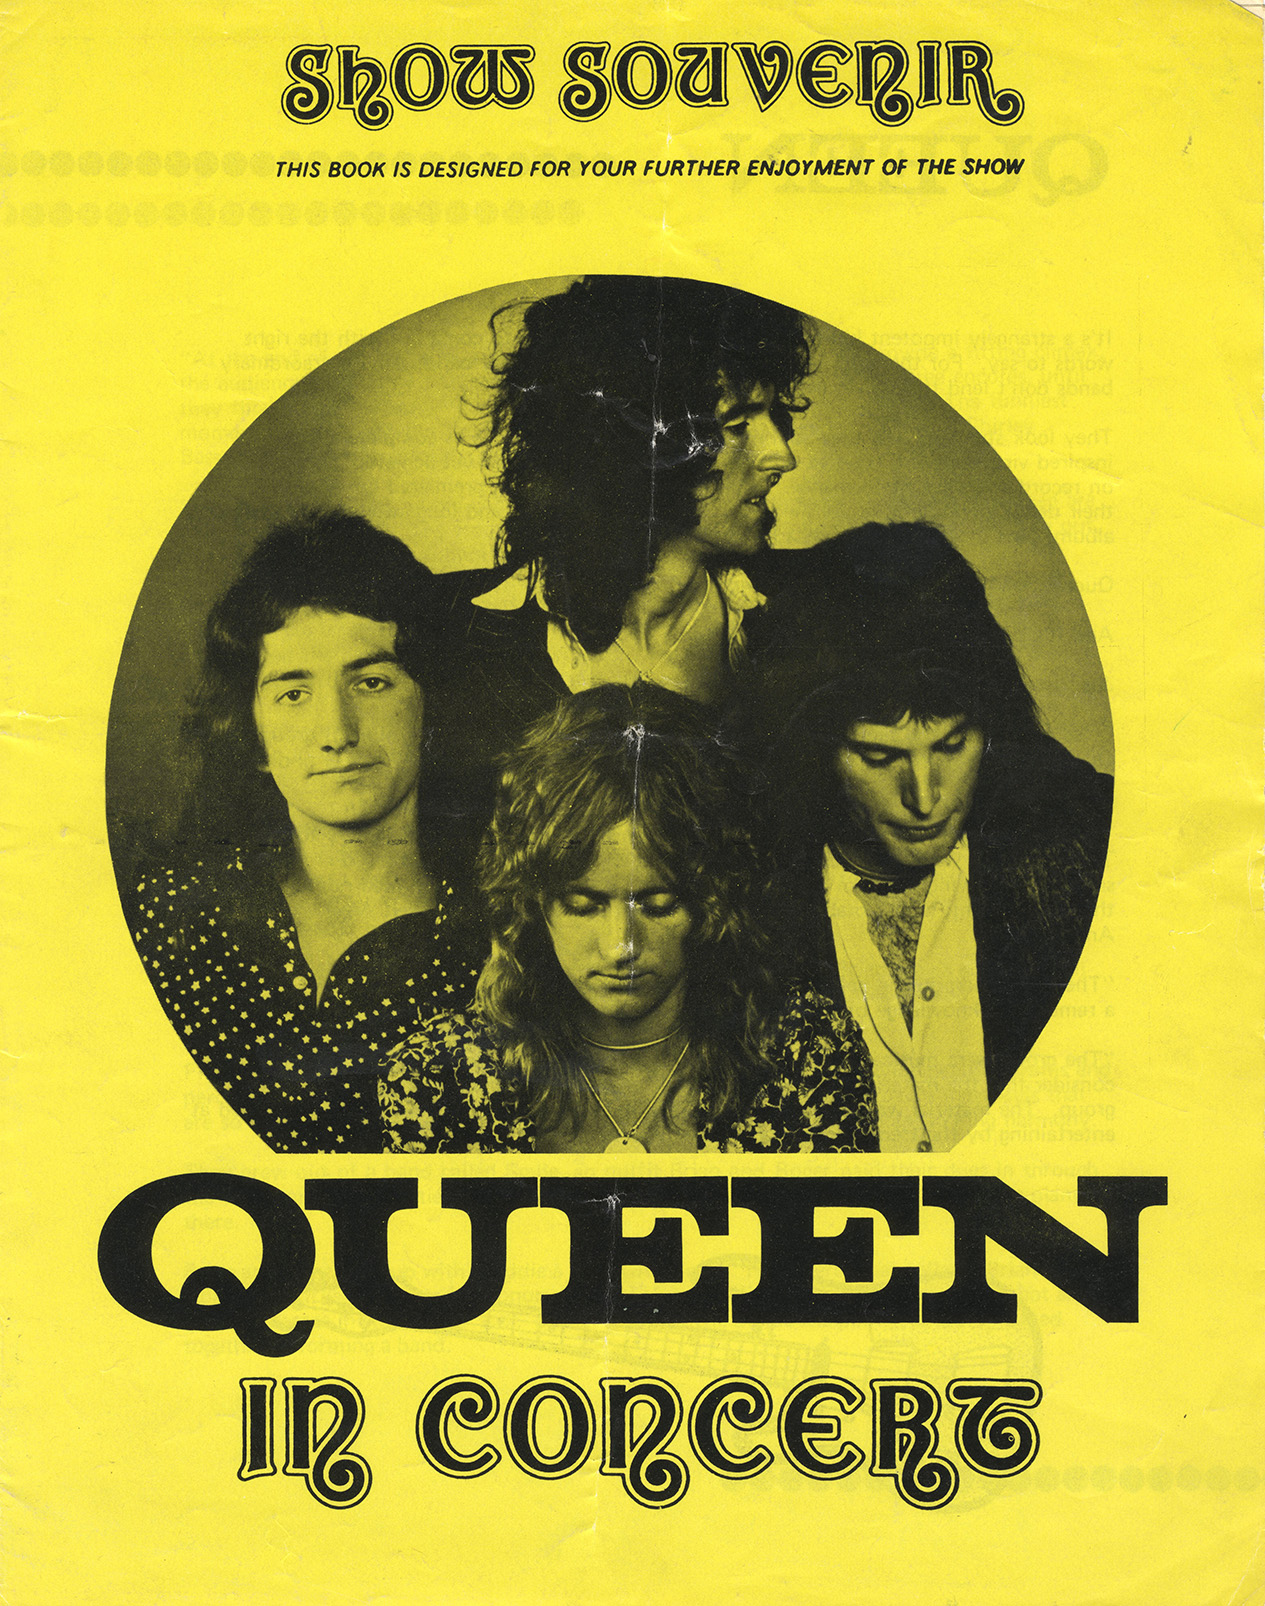 Early Queen show souvenir - yellow without photo (UK)